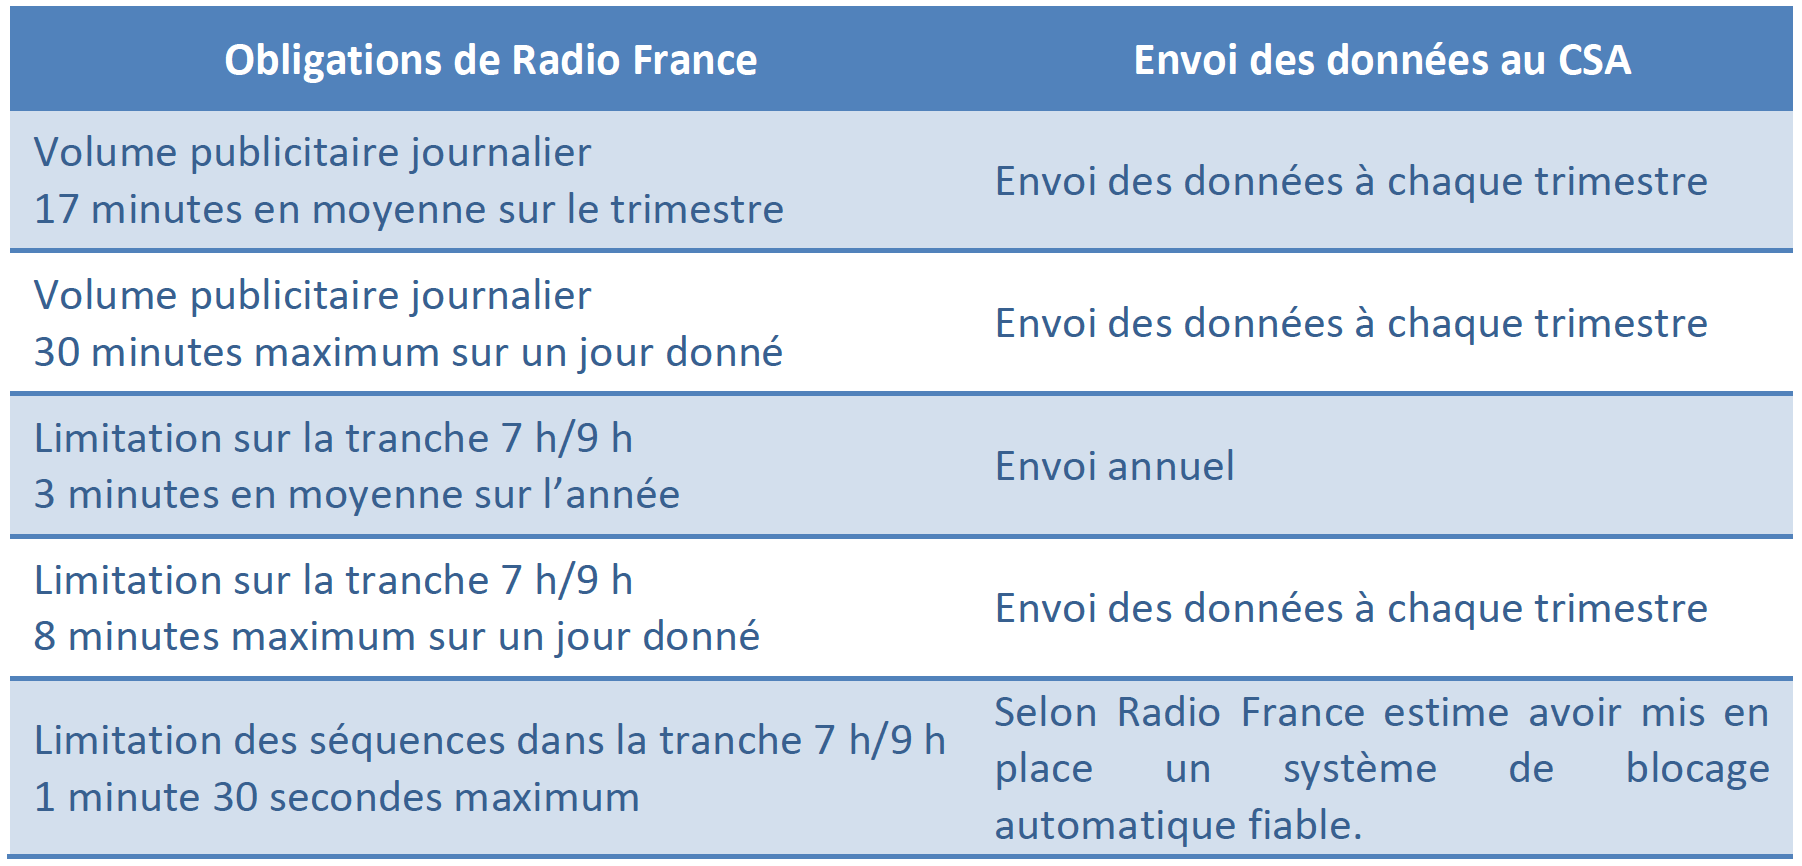 Respect des obligations par Radio France